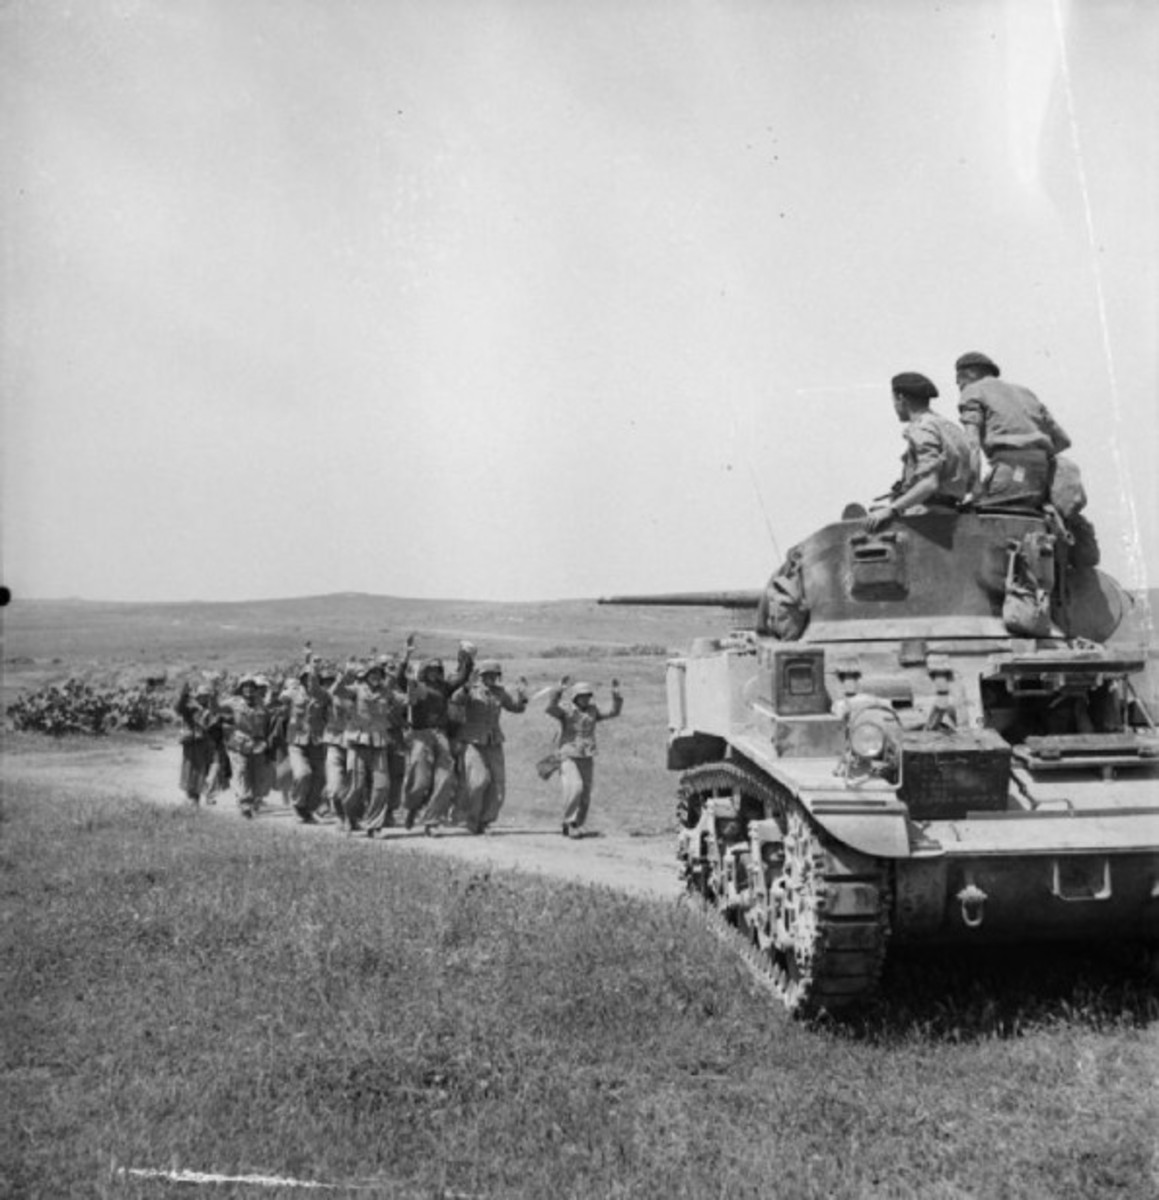 German prisoners led by an Allied tank over 200,000 Axis troops surrendered in Tunisia.